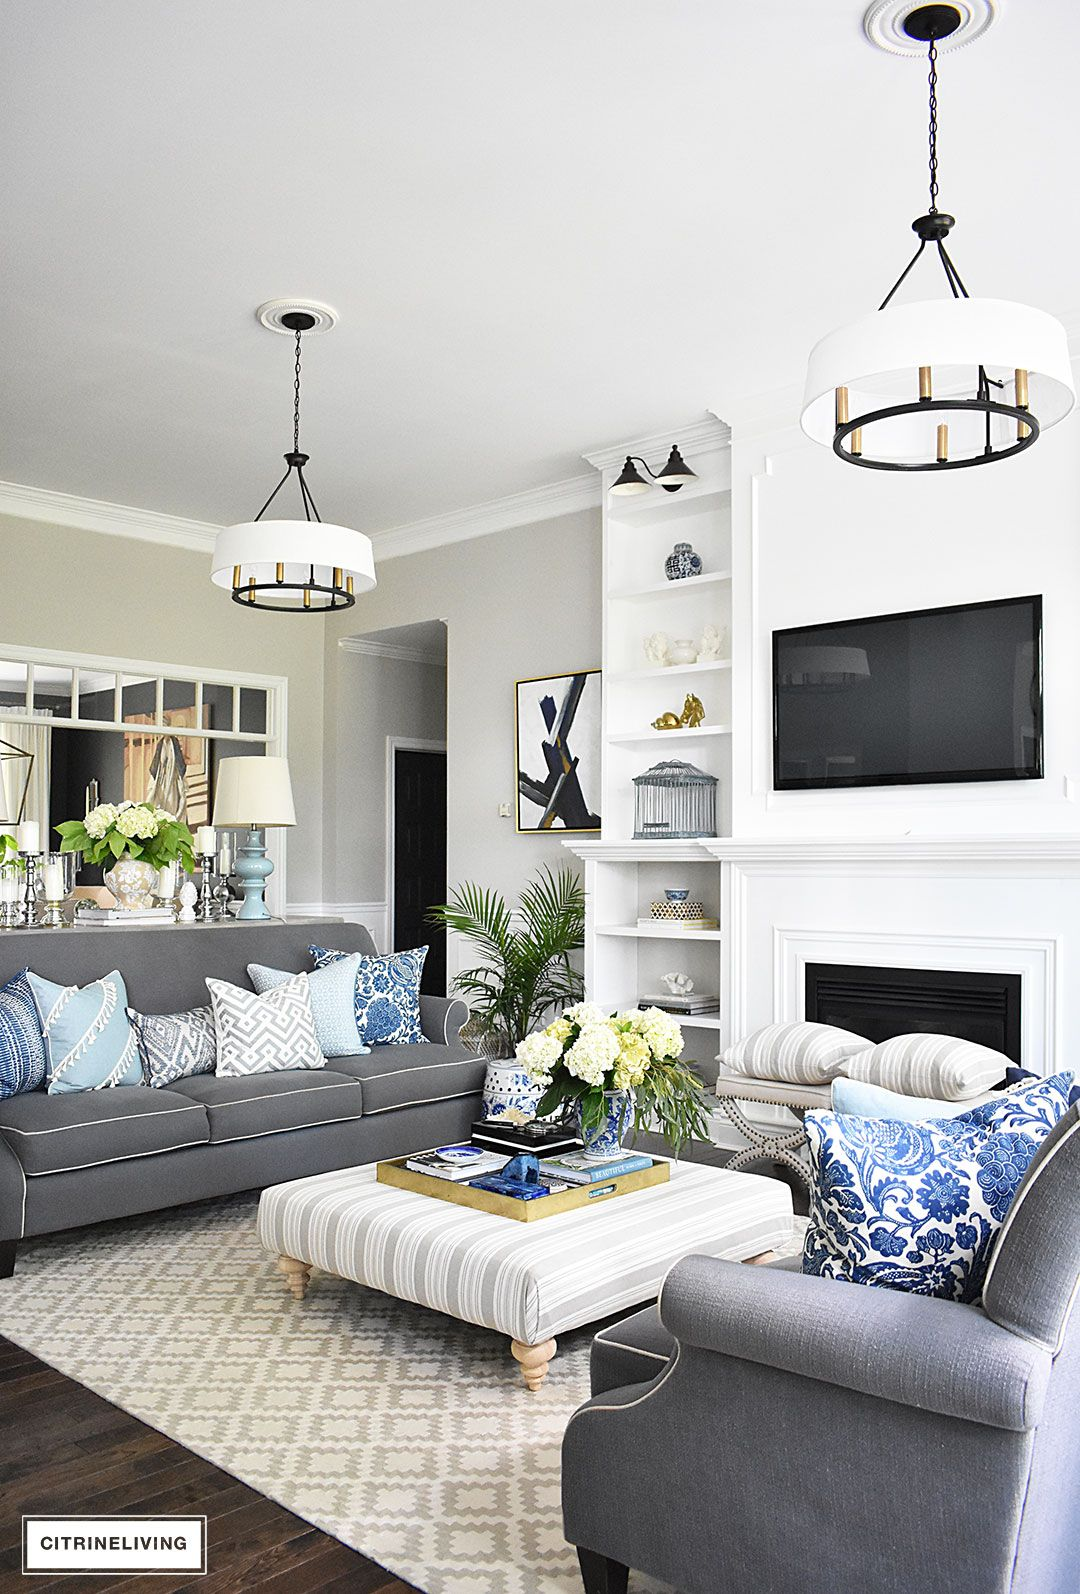 20 fresh ideas for decorating with blue and white blue - How to decorate a gray living room ...